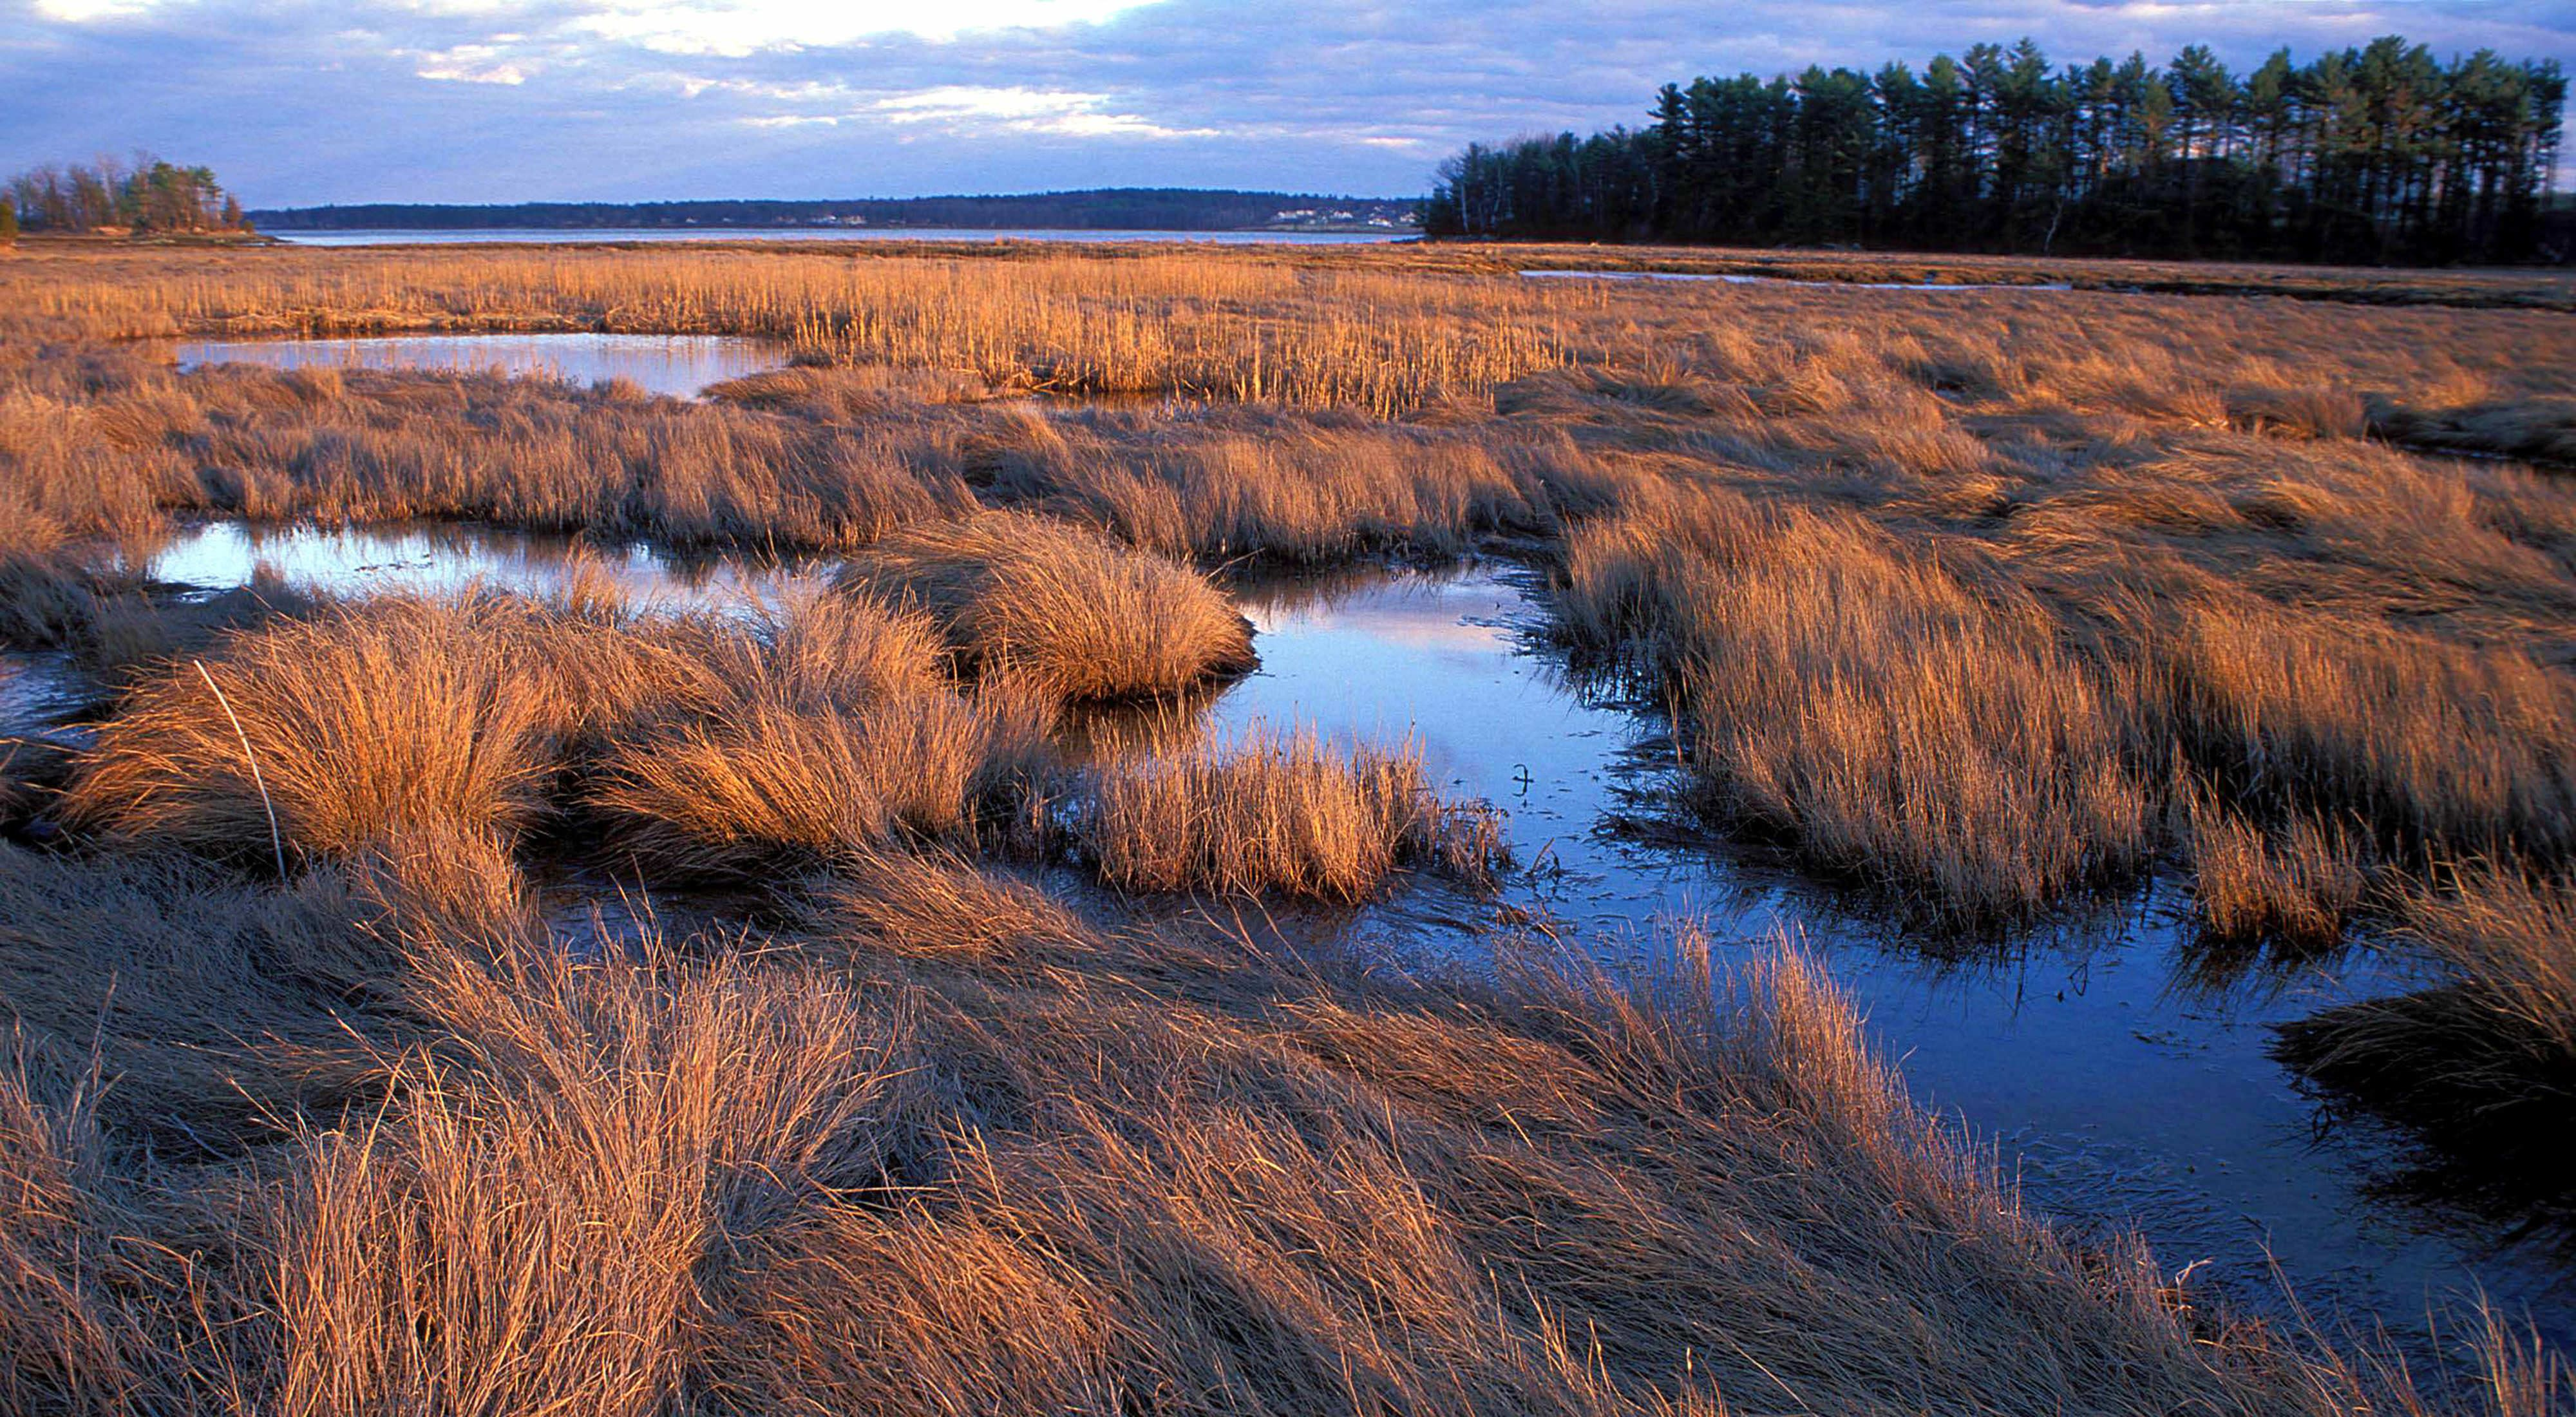 Sunset on the salt marsh at Lubberland Creek Preserve in Newmarket, New Hampshire.